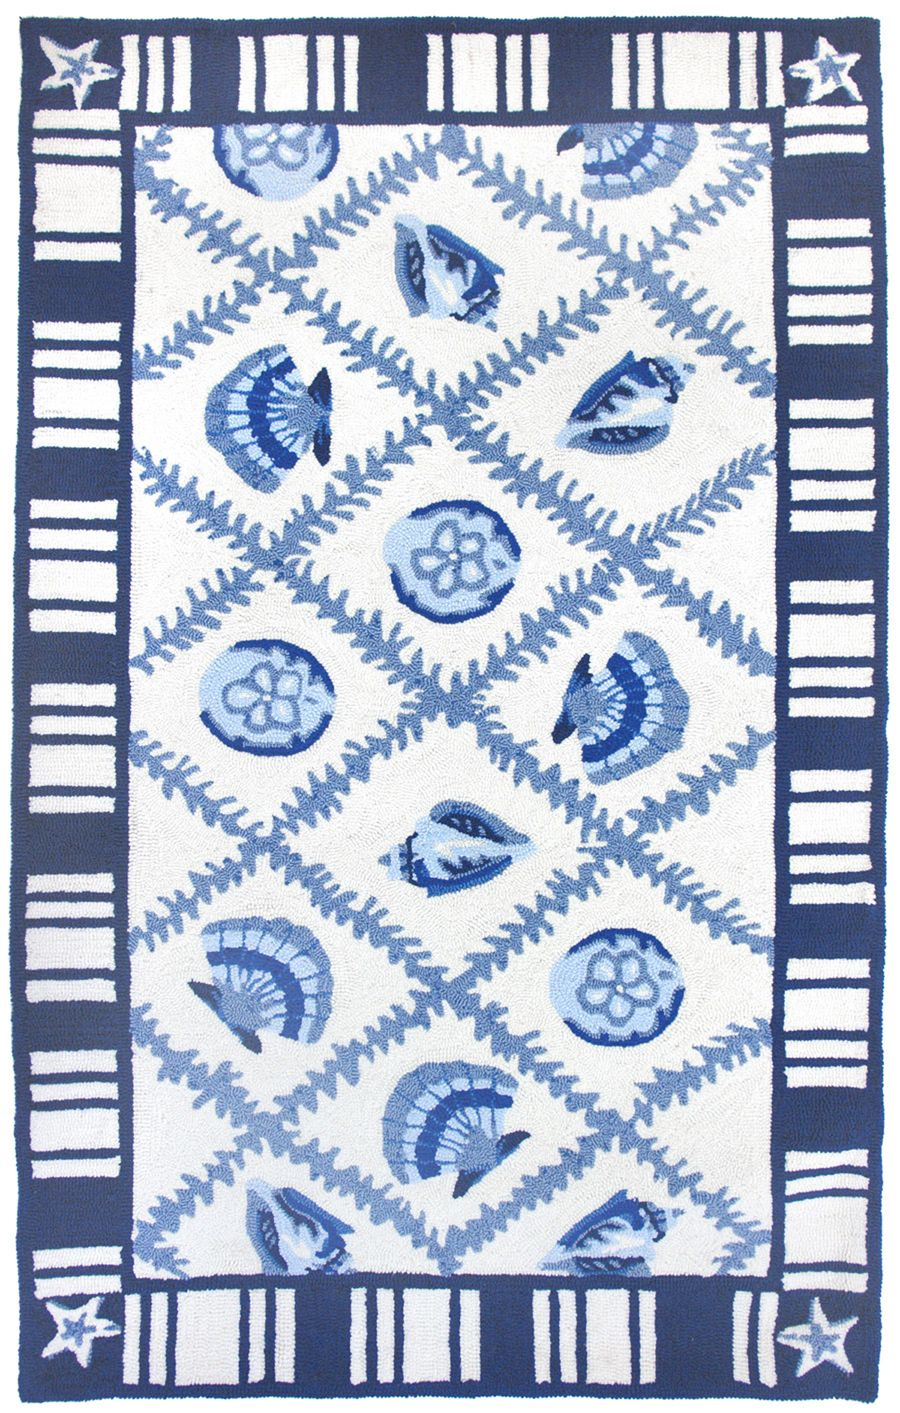 homefires navy blues contemporary area rug collection